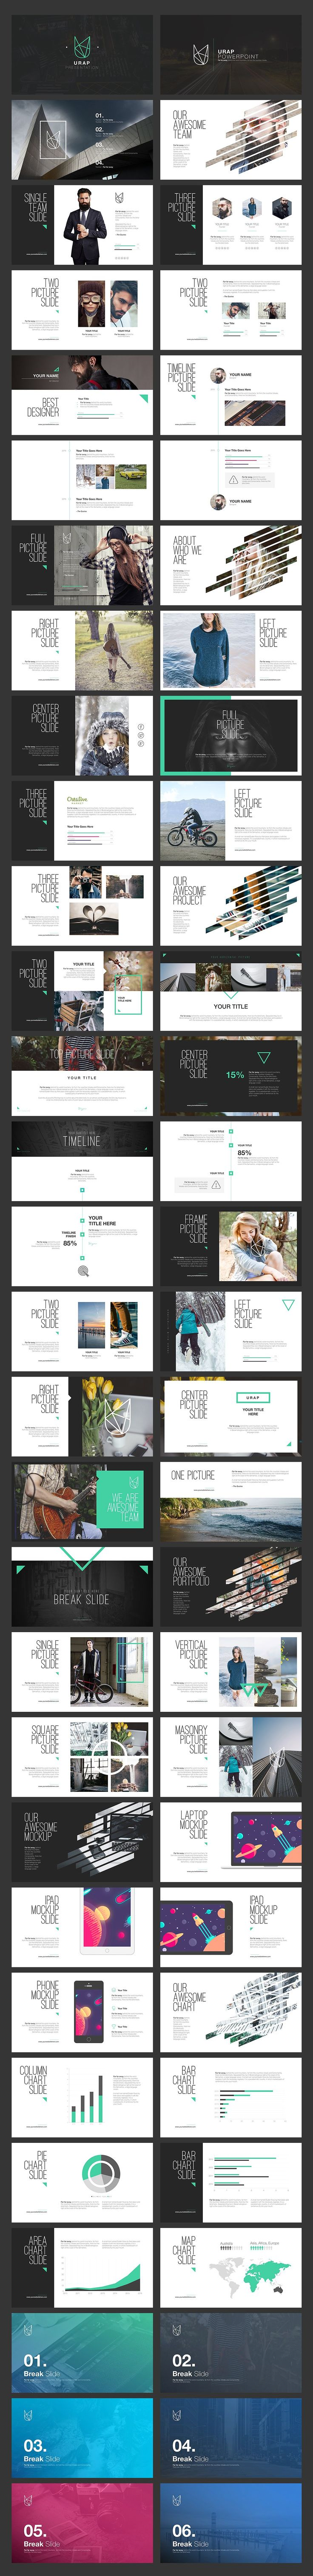 URAP Keynote Template by Angkalimabelas on @creativemarket